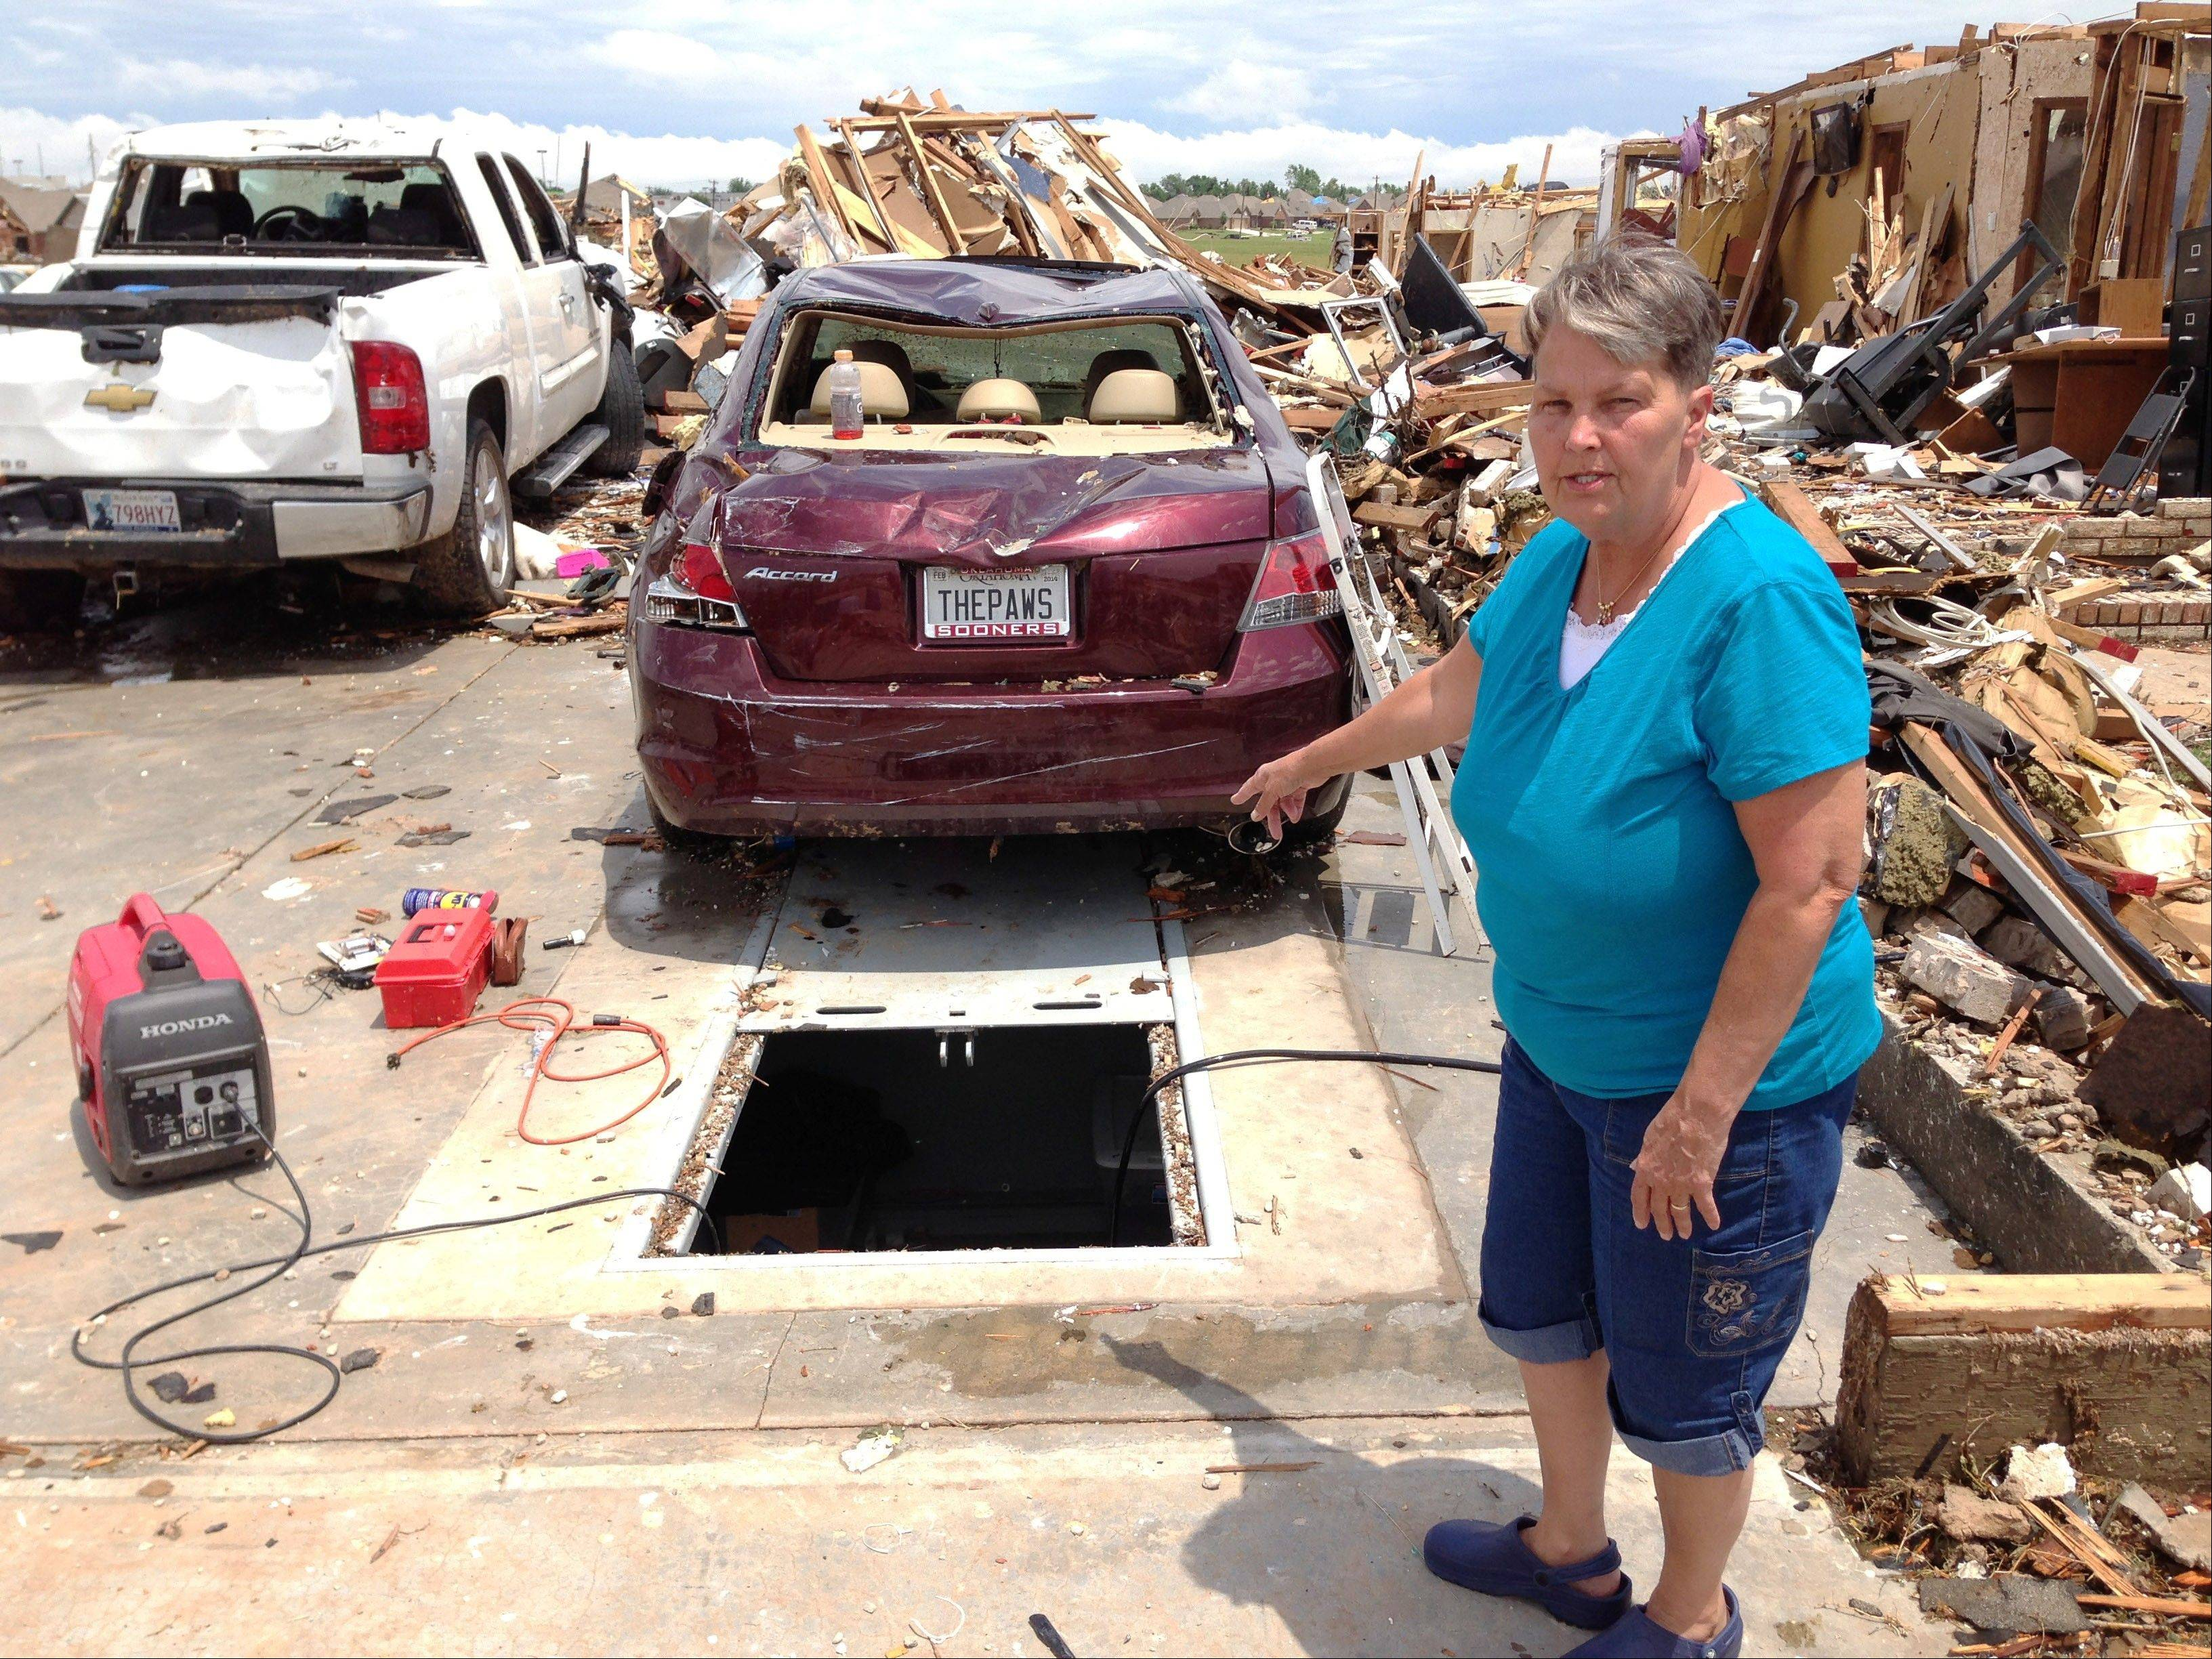 Sherry Wells stands near the storm shelter where she took cover when a tornado destroyed her home on Monday May 20, 2013 in Moore, Okla. Wells said she and her husband won a lottery draw to receive a government-subsidized rebate to install the storm shelter. A contractor finished work on the concrete bunker beneath the slab of their garage about three weeks before the tornado hit.